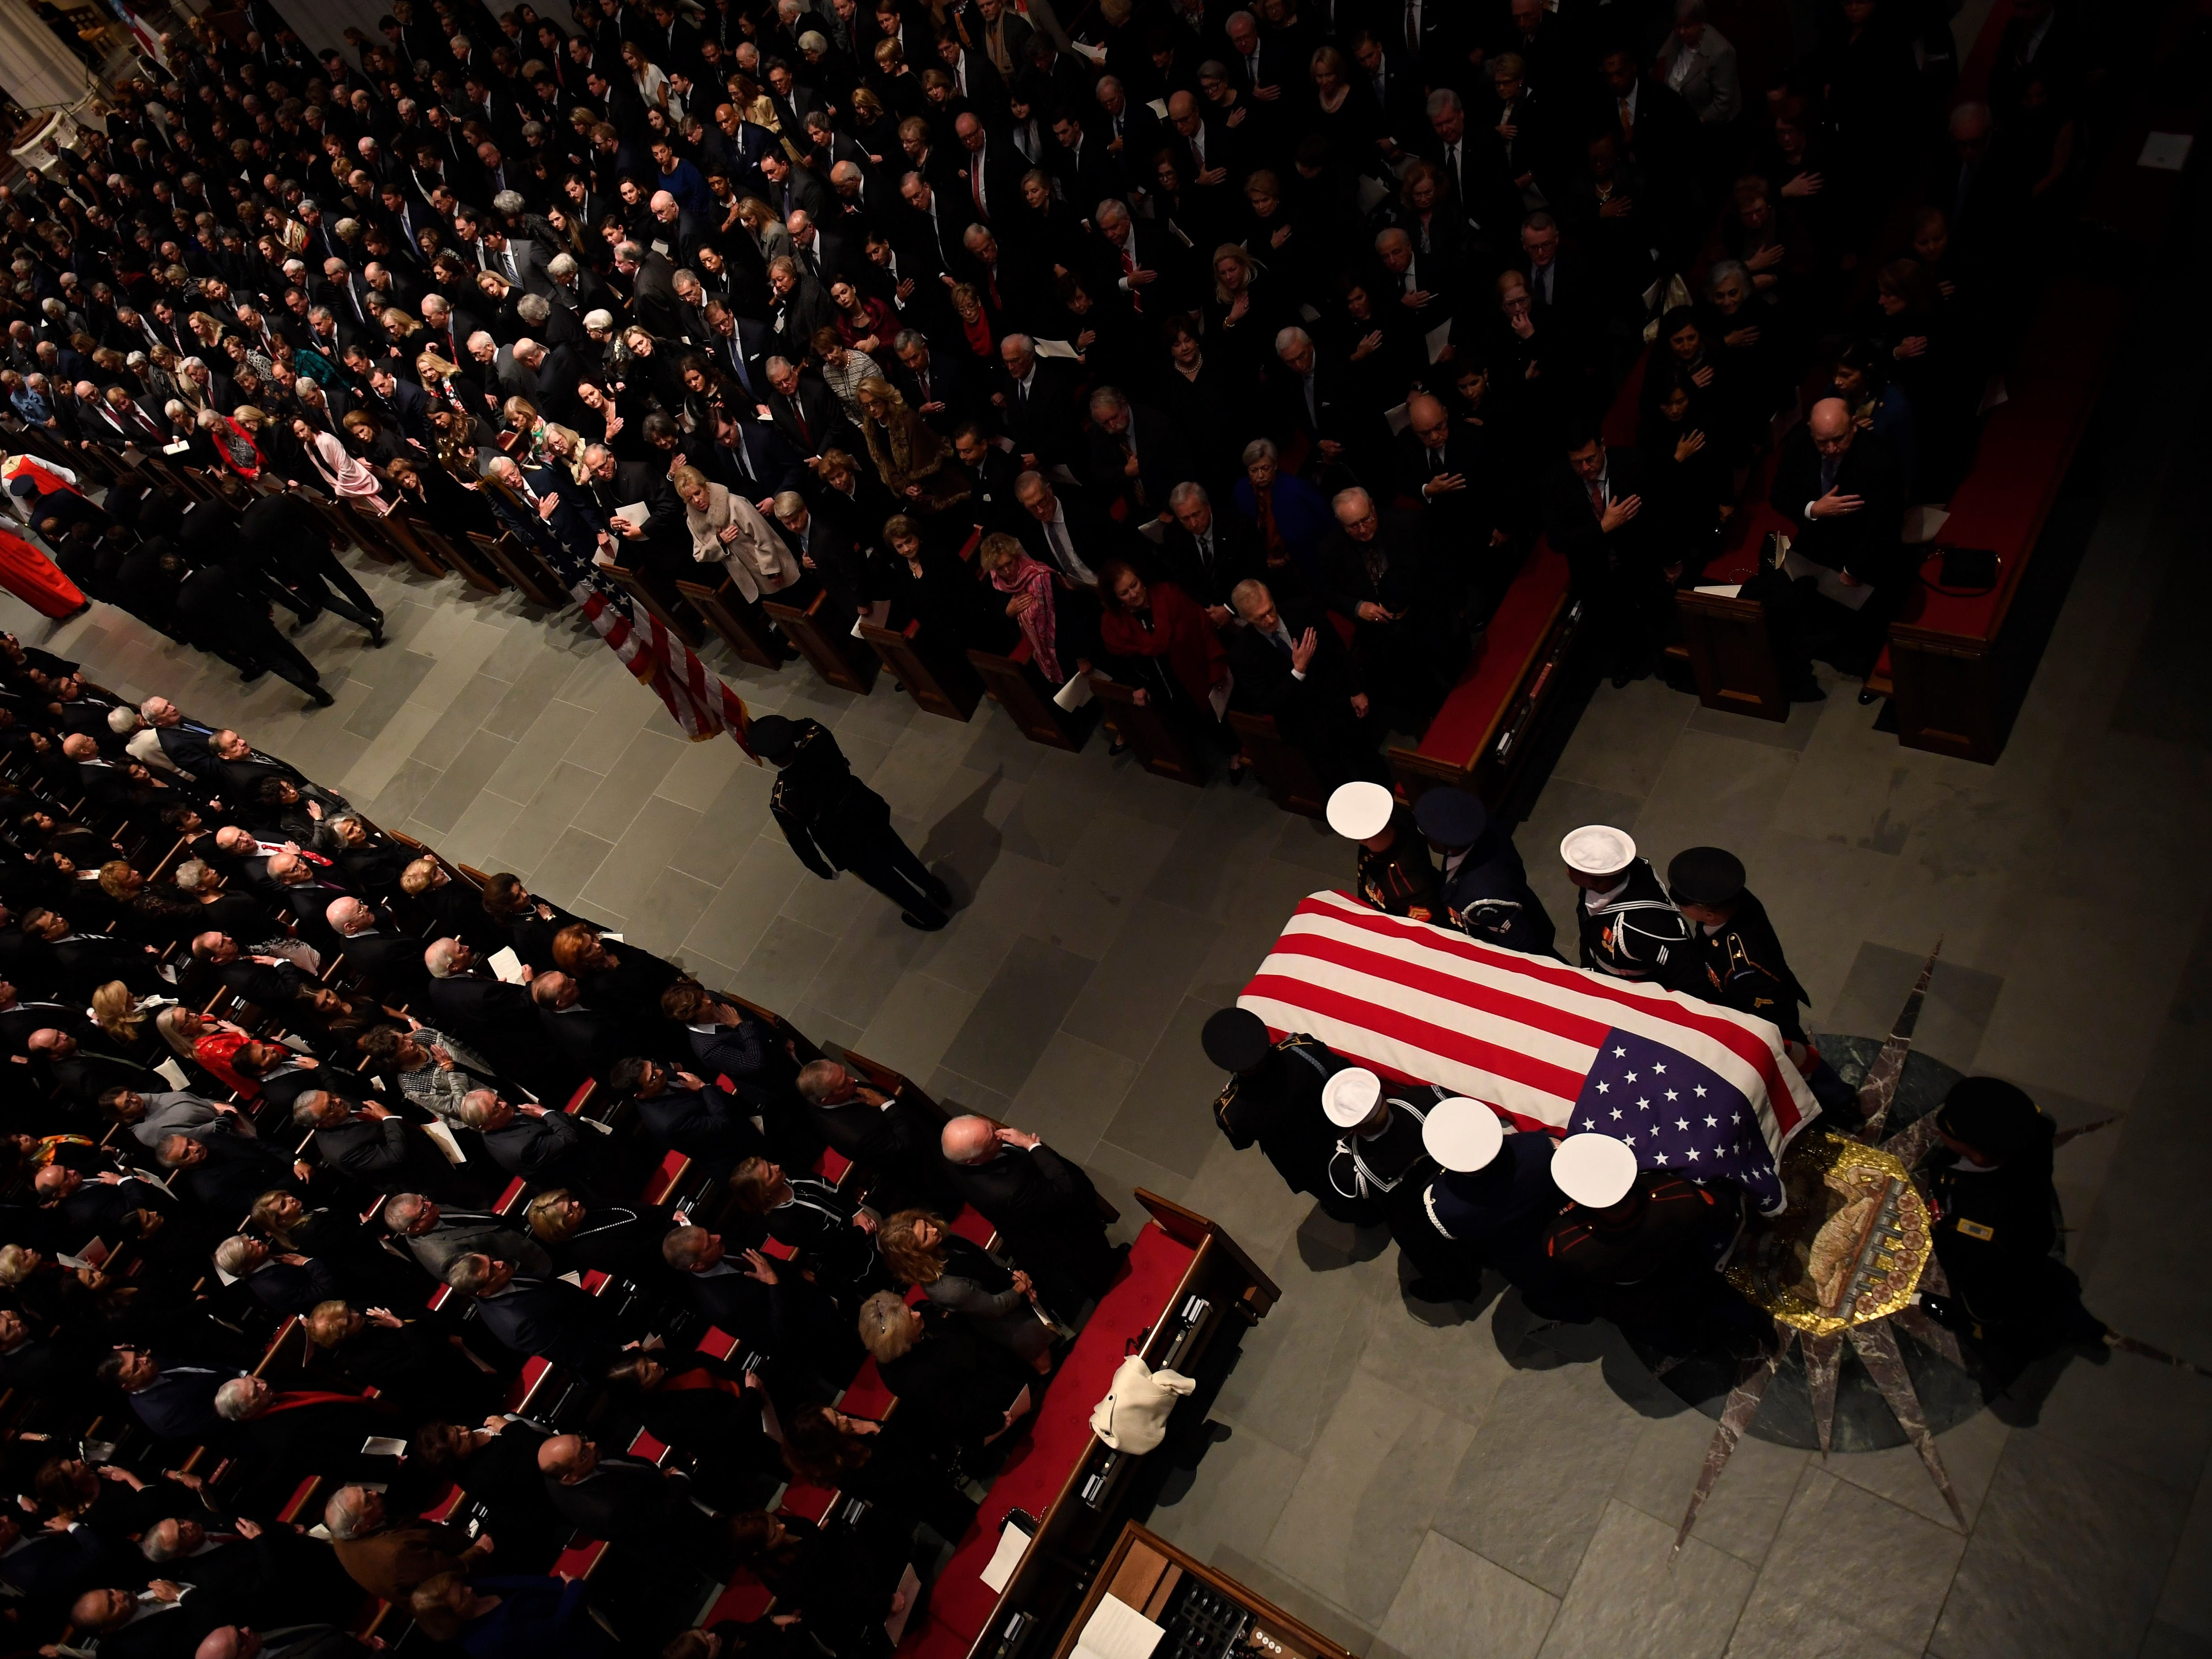 The flag-draped casket of former President George H.W. Bush is carried by a joint services military honor guard into St. Martin's Episcopal Church Thursday, Dec. 6, 2018, in Houston.